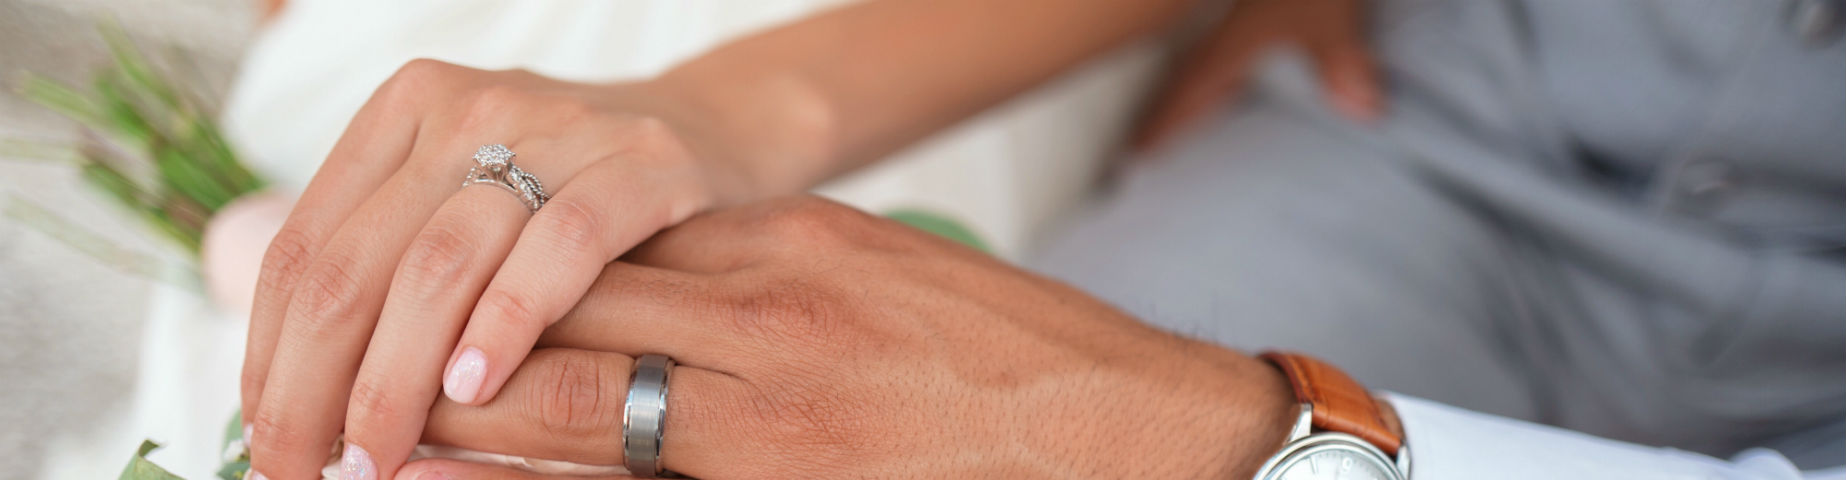 woman wearing vintage style engagement ring with her hand on top of husband's